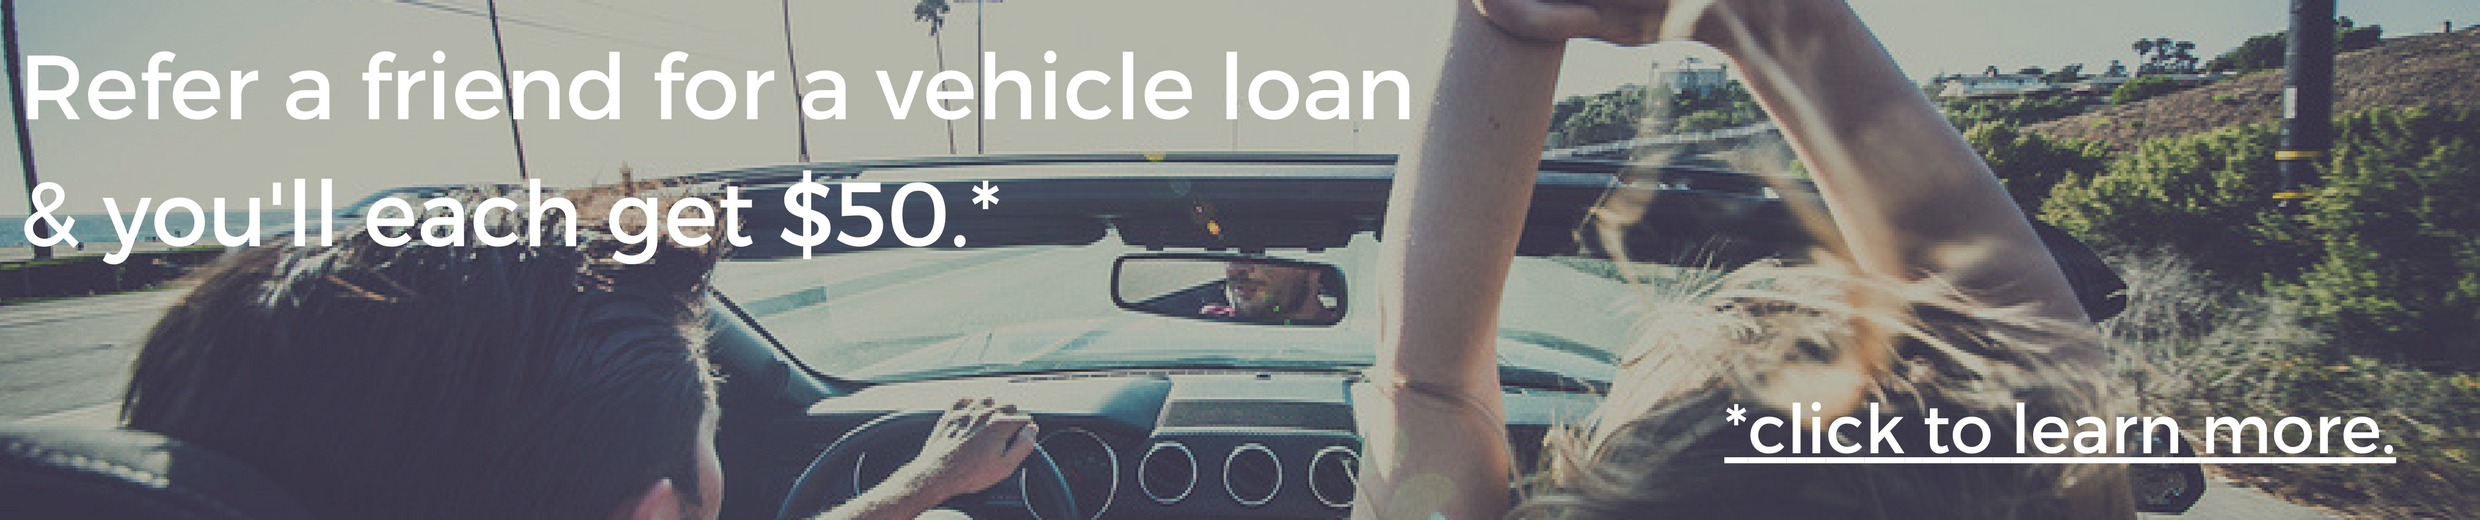 Vehicle Loans | LA Financial